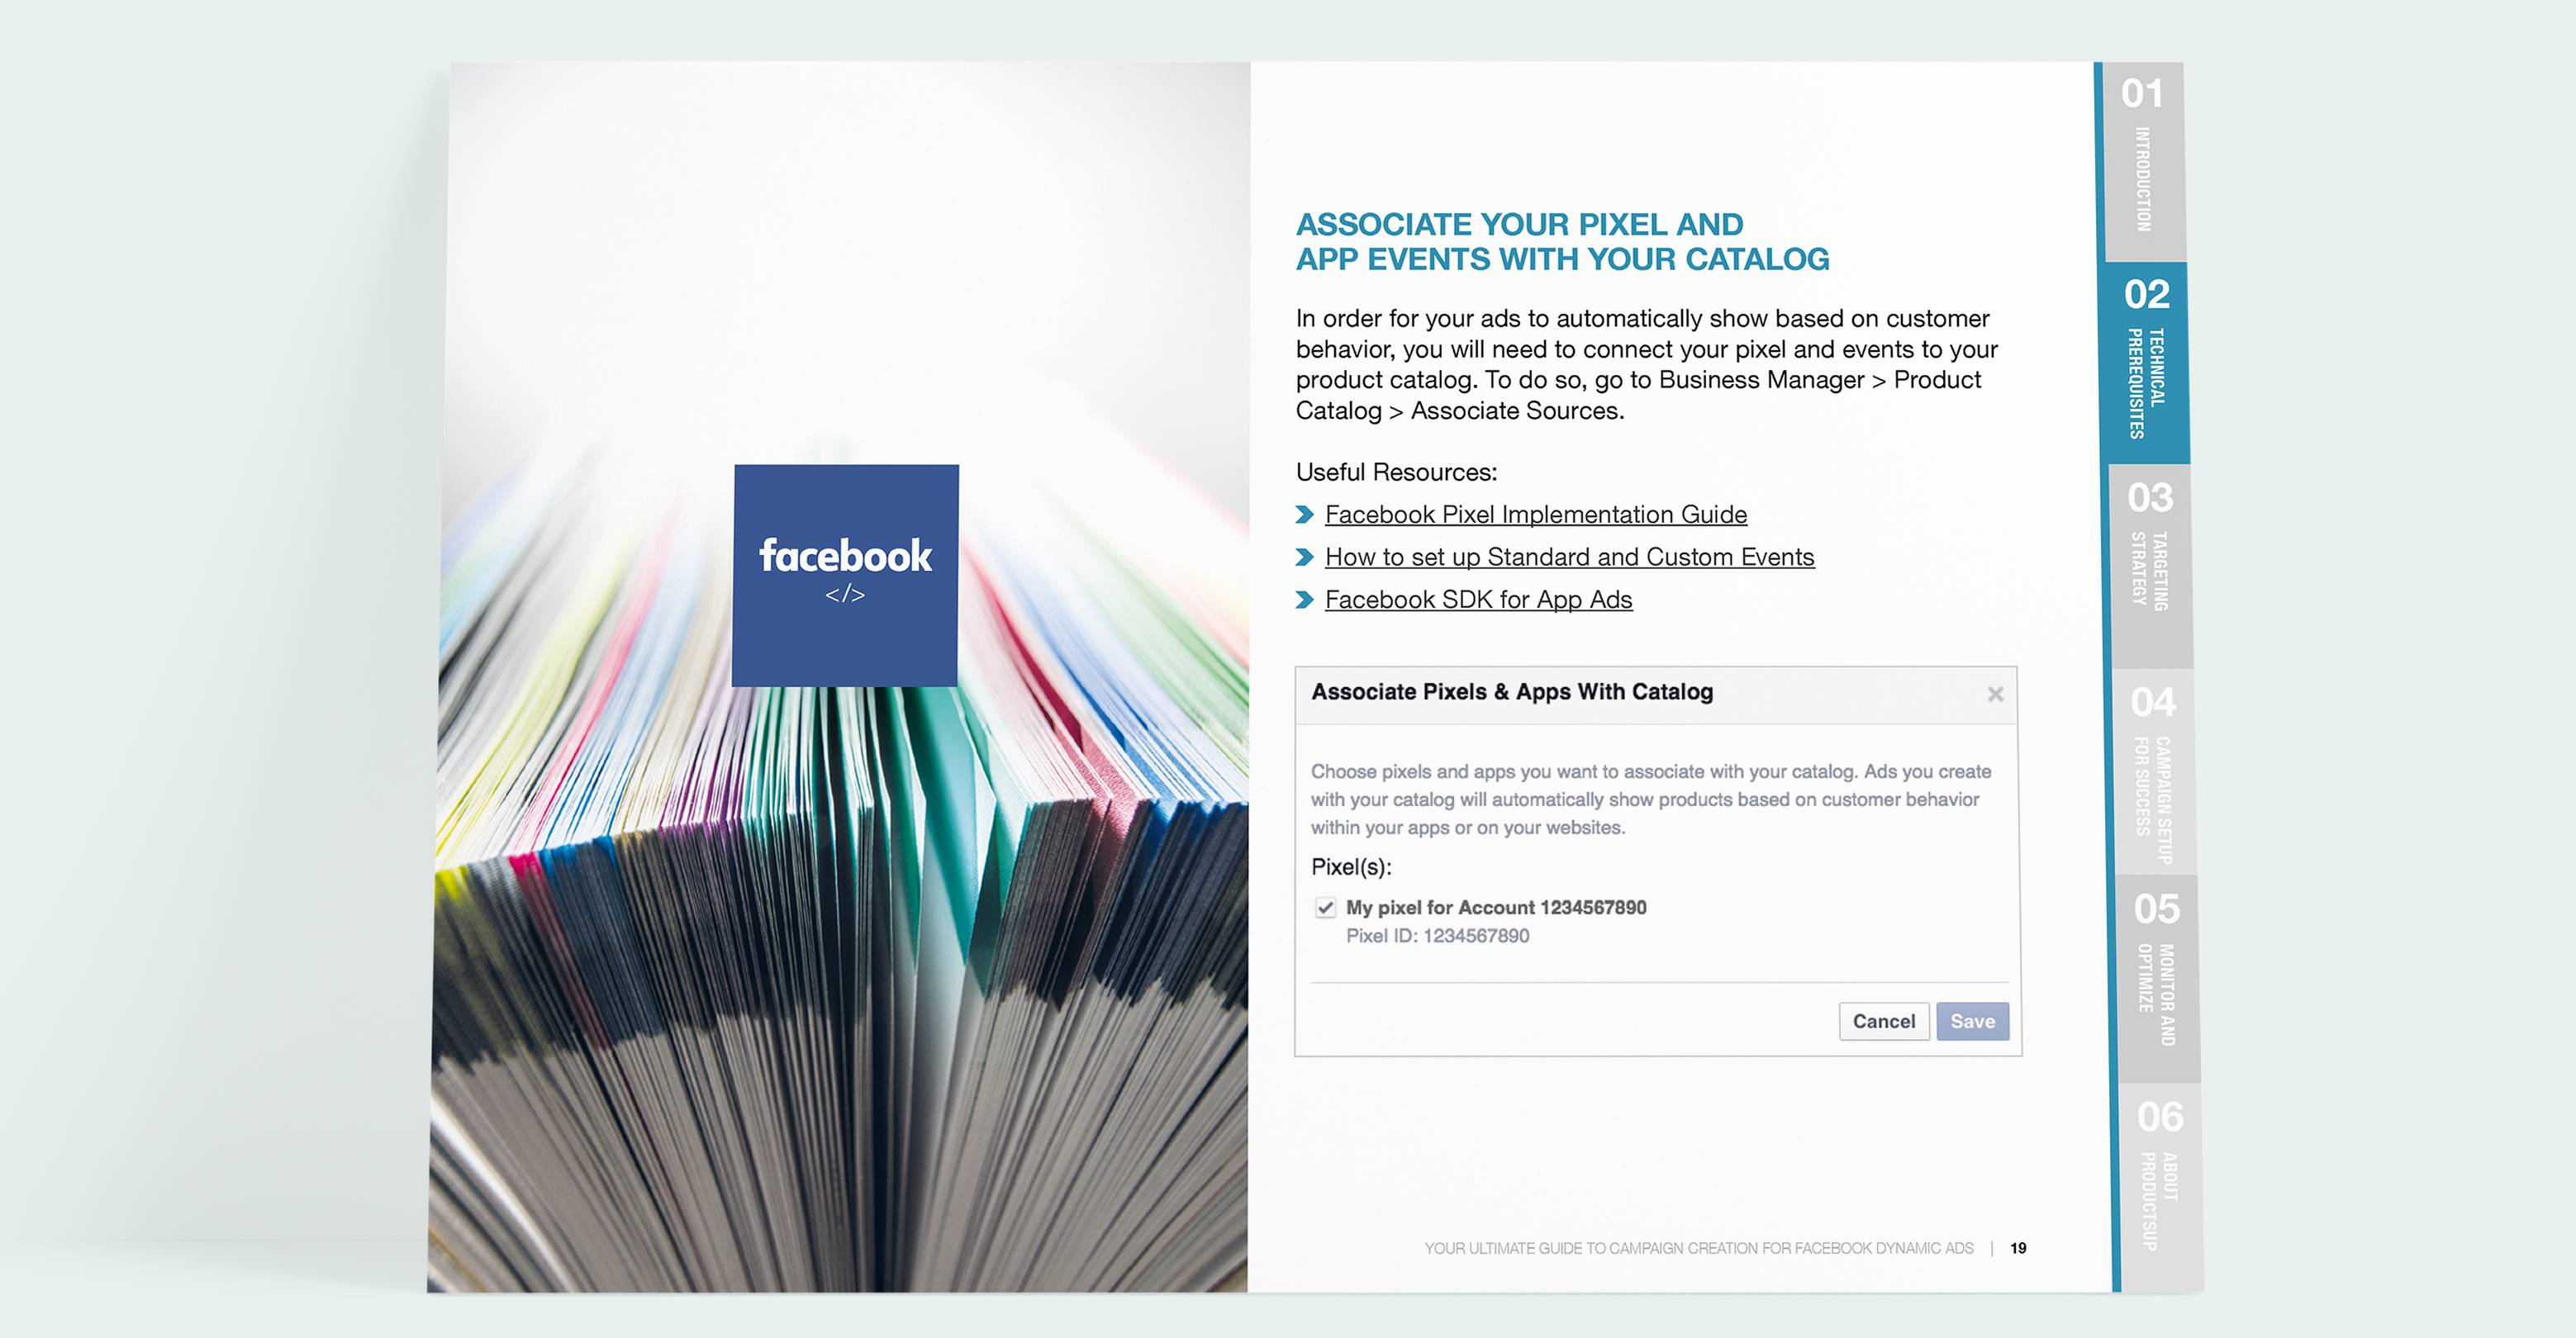 Your Complete Guide To Product Catalogs for Facebook Dynamic Ads - Preview 1